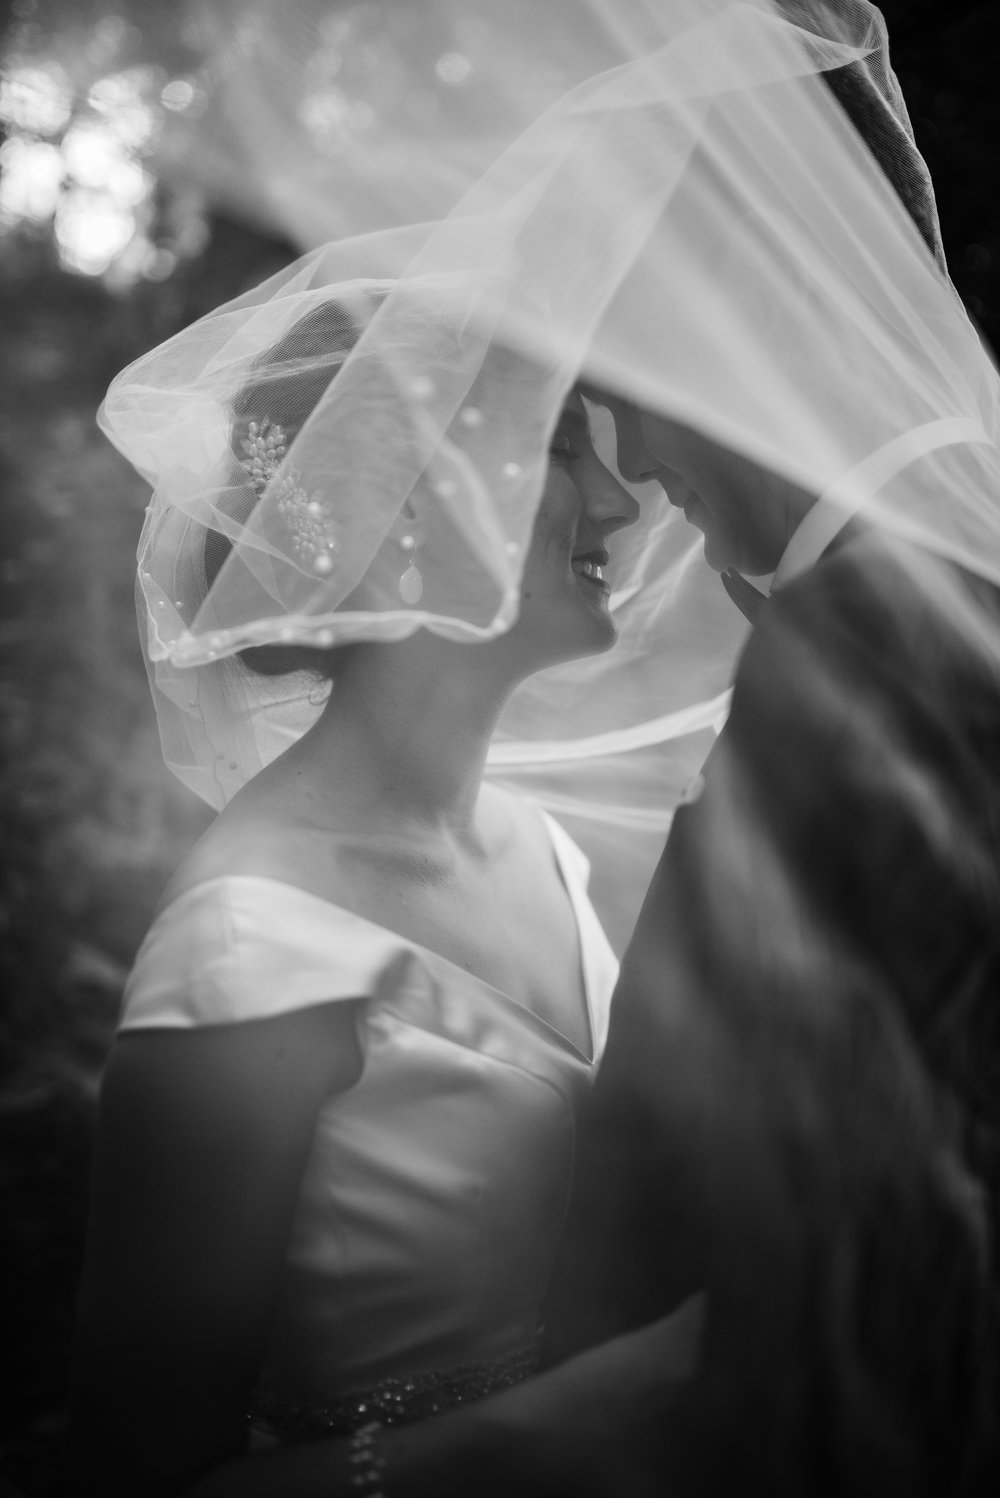 bride-groom-veil-picture-black-and-white-eglington-grand-wedding-by-willow-birch-photo-toronto-documentary-wedding-photographers.jpg